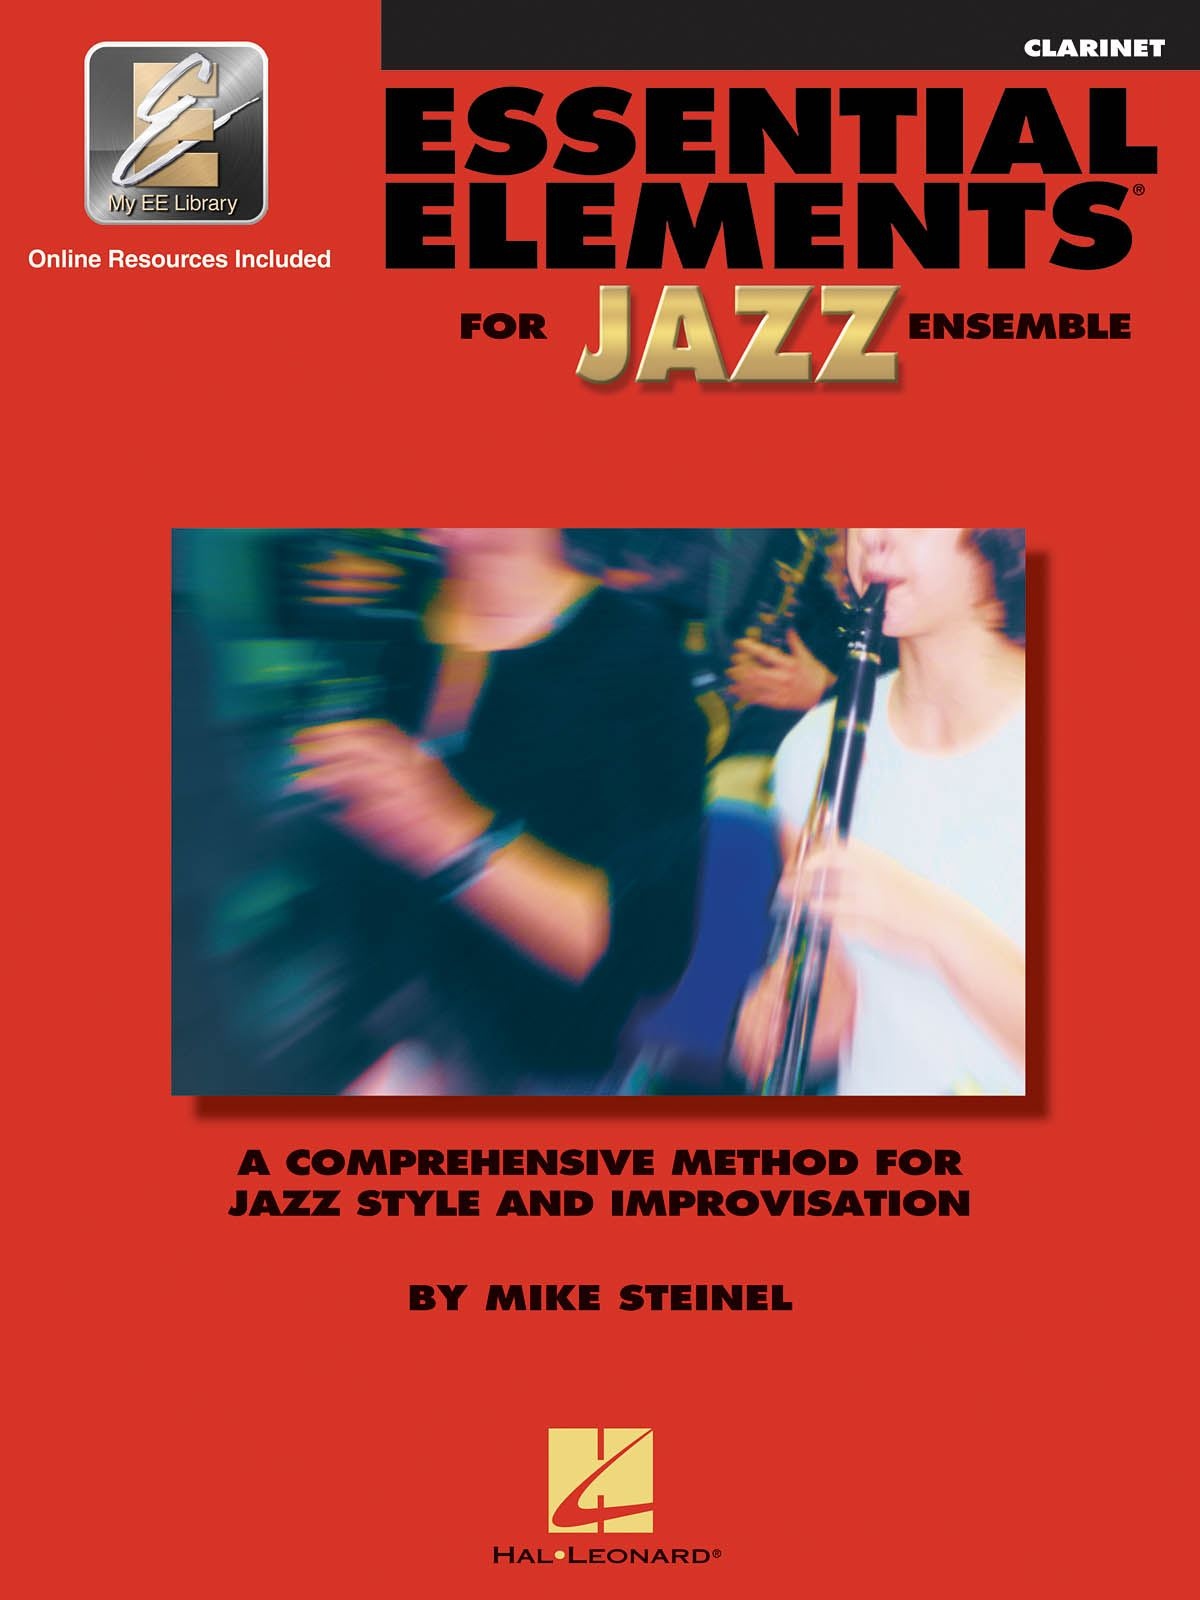 Essential Elements for Jazz Ensemble (Clarinet): Jazz Ensemble: Book & Audio